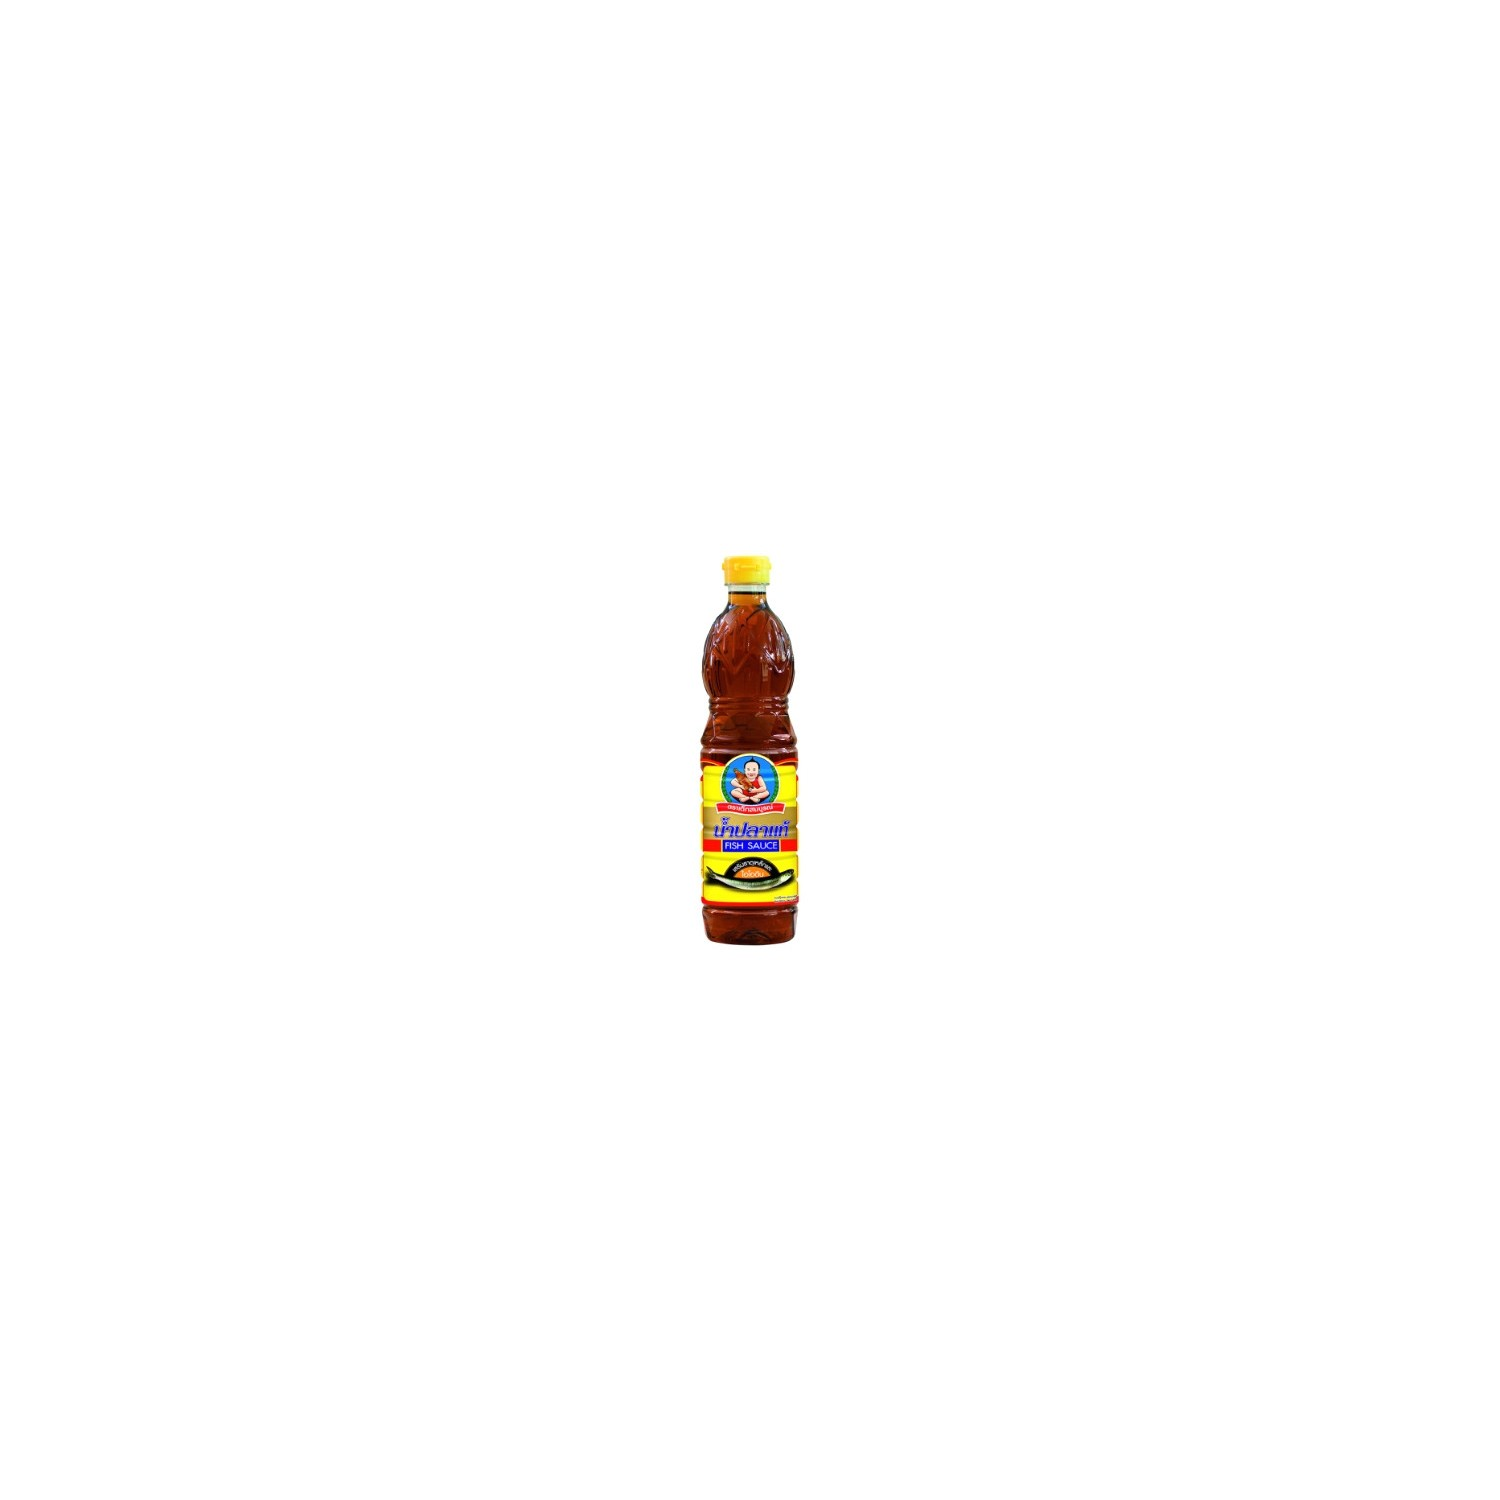 Healthy Boy Fish Sauce 700ml Squeezy Bottle